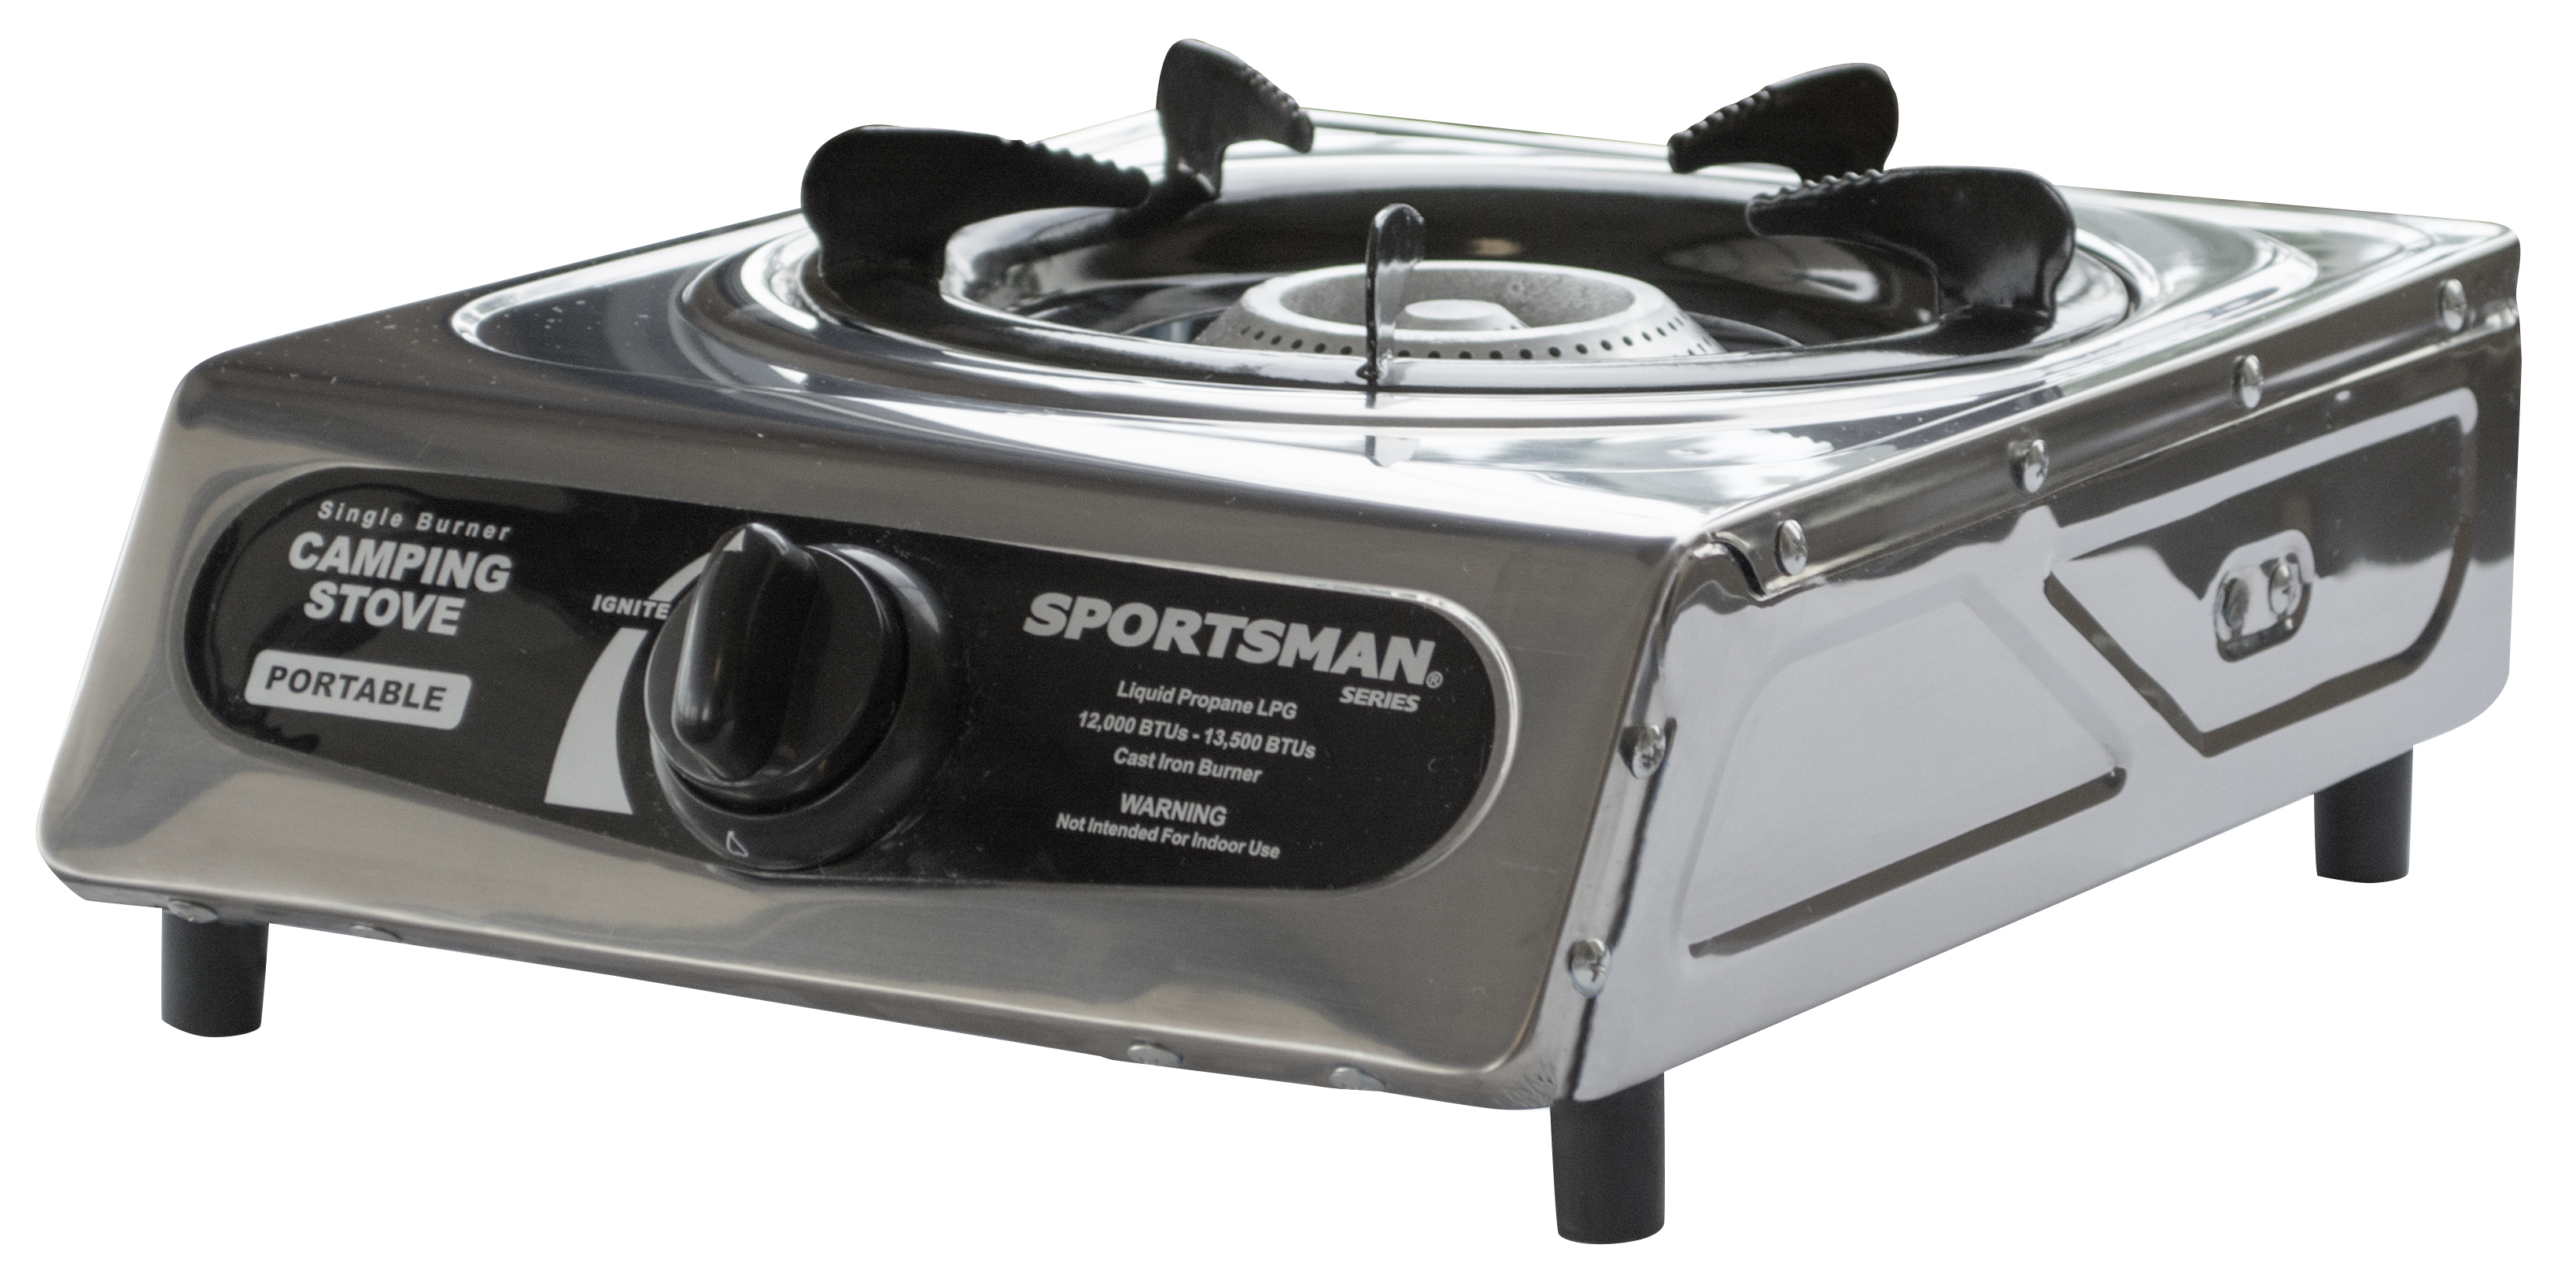 sportsman series portable single burner camping stove gas. Black Bedroom Furniture Sets. Home Design Ideas